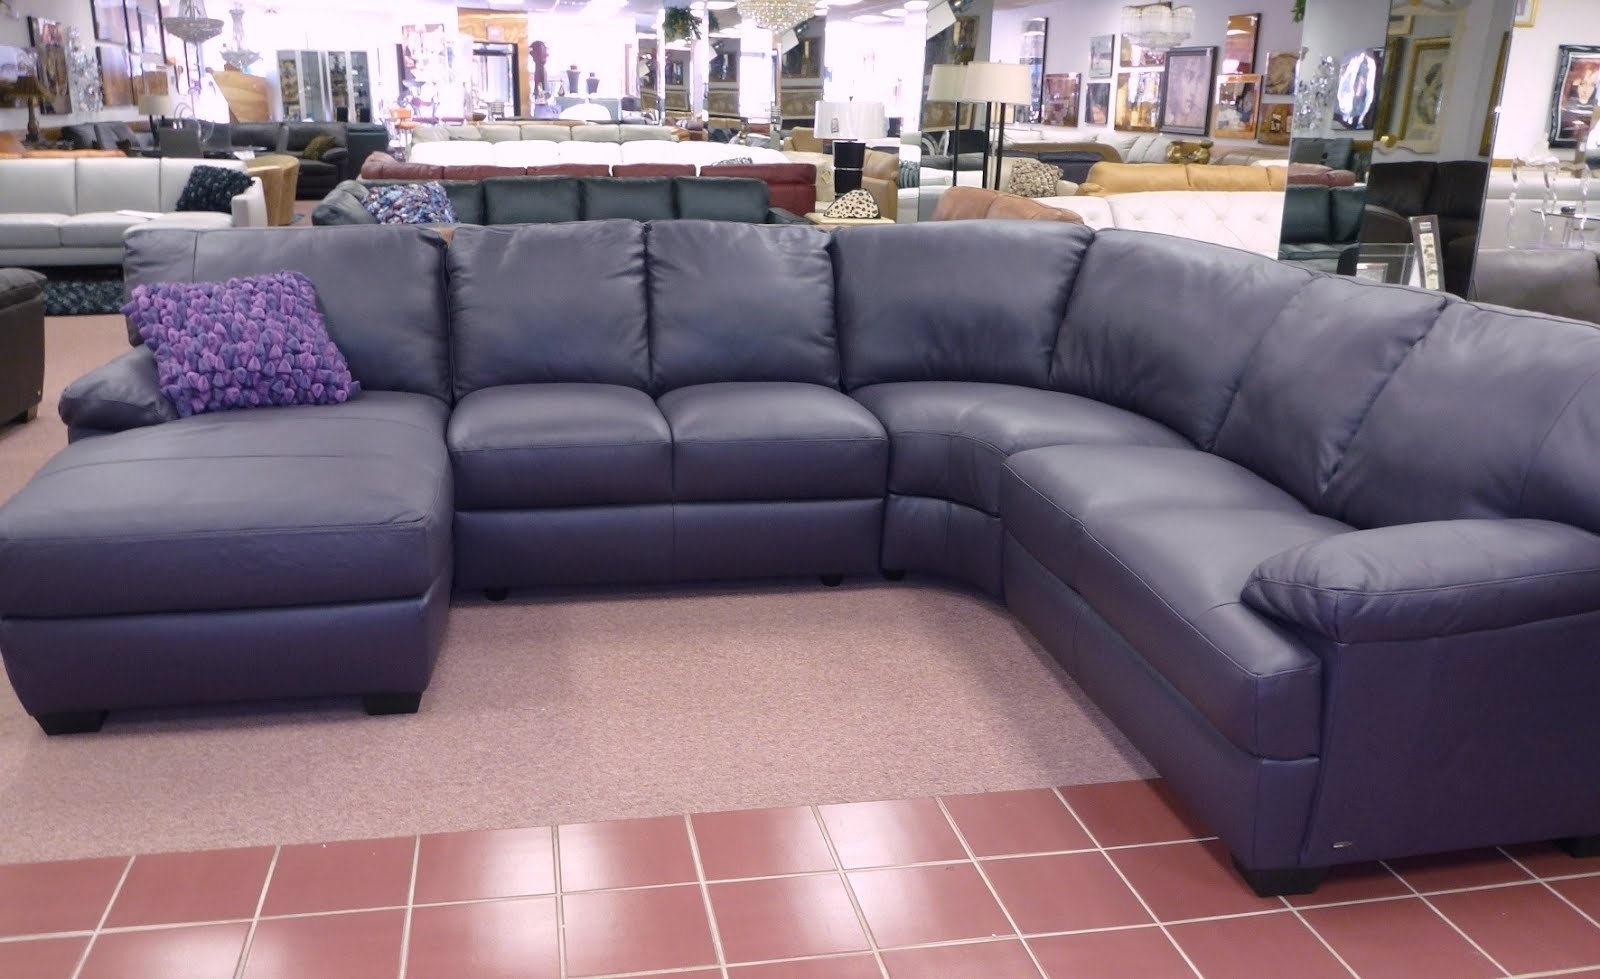 Popular Joining Hardware Sectional Sofas Pertaining To Furniture : Large Traditional Sectional Sofas Sectional Sofa Sale (View 15 of 15)